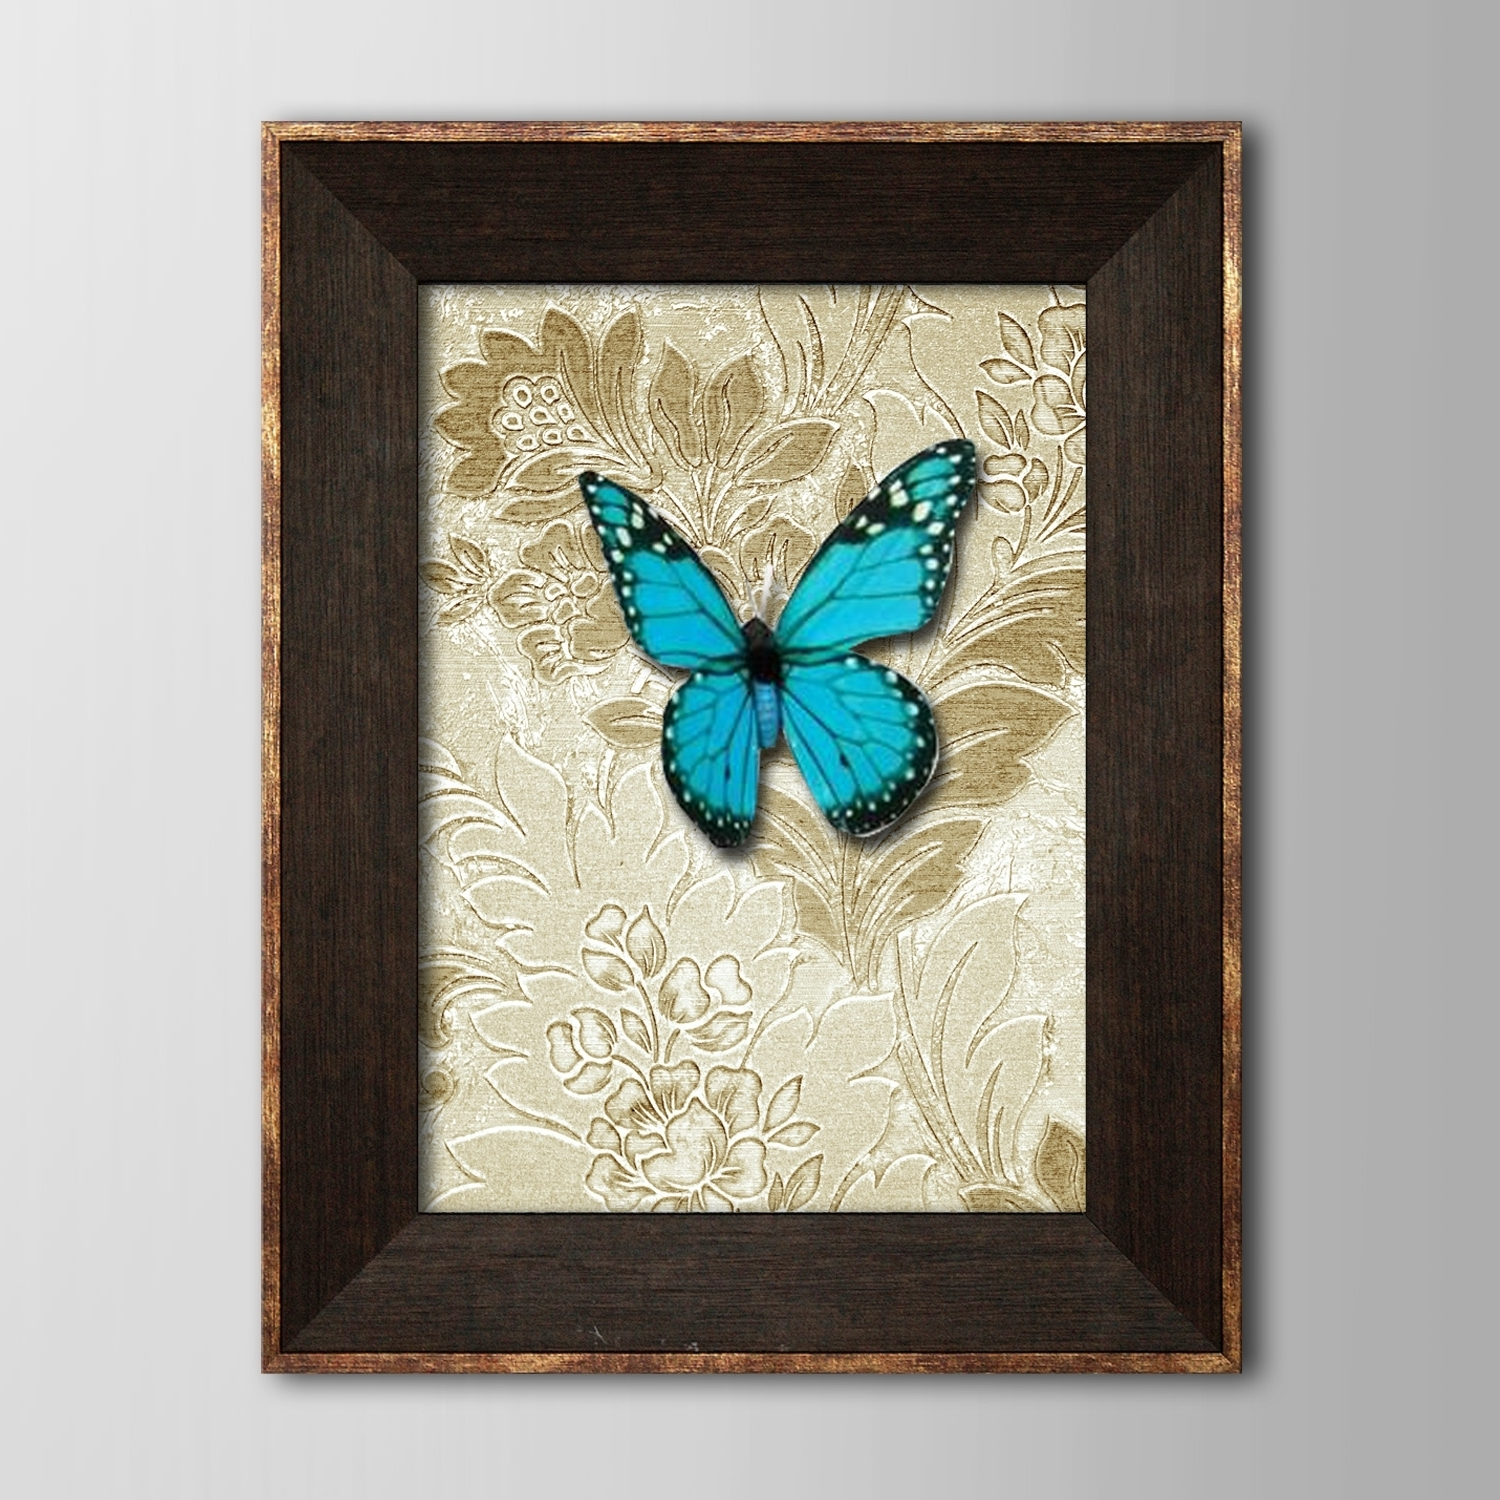 Recent 3D Butterfly Framed Wall Art Within Framed 3D Art Wall Art, Animal 3D Blue Butterflies, Wall Decor (View 15 of 15)